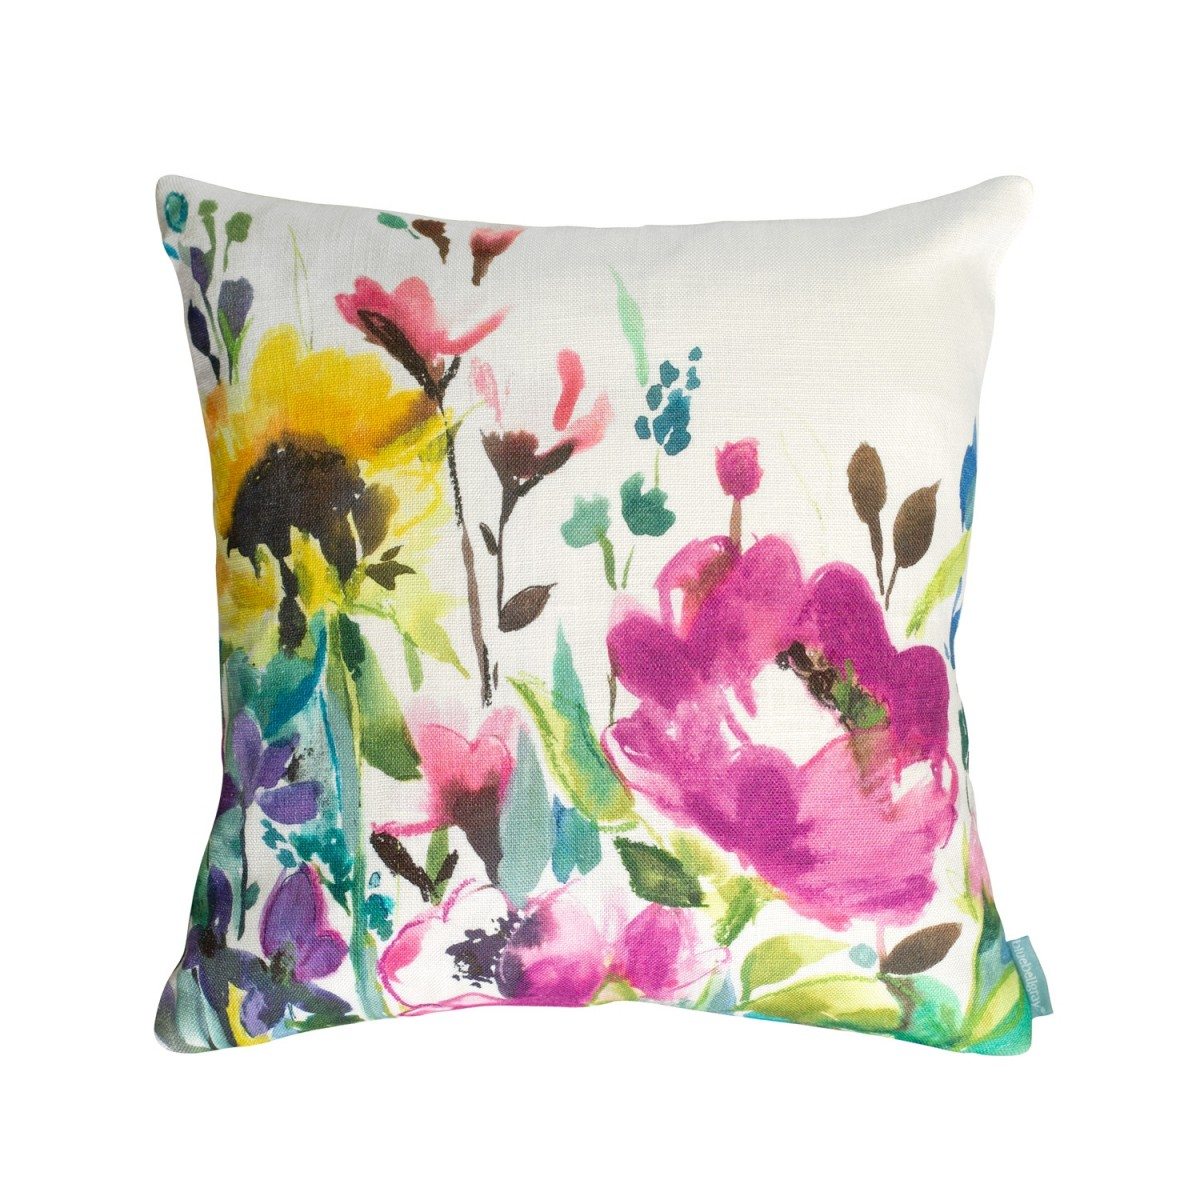 Giverny Cushion, available from August 2019, £85